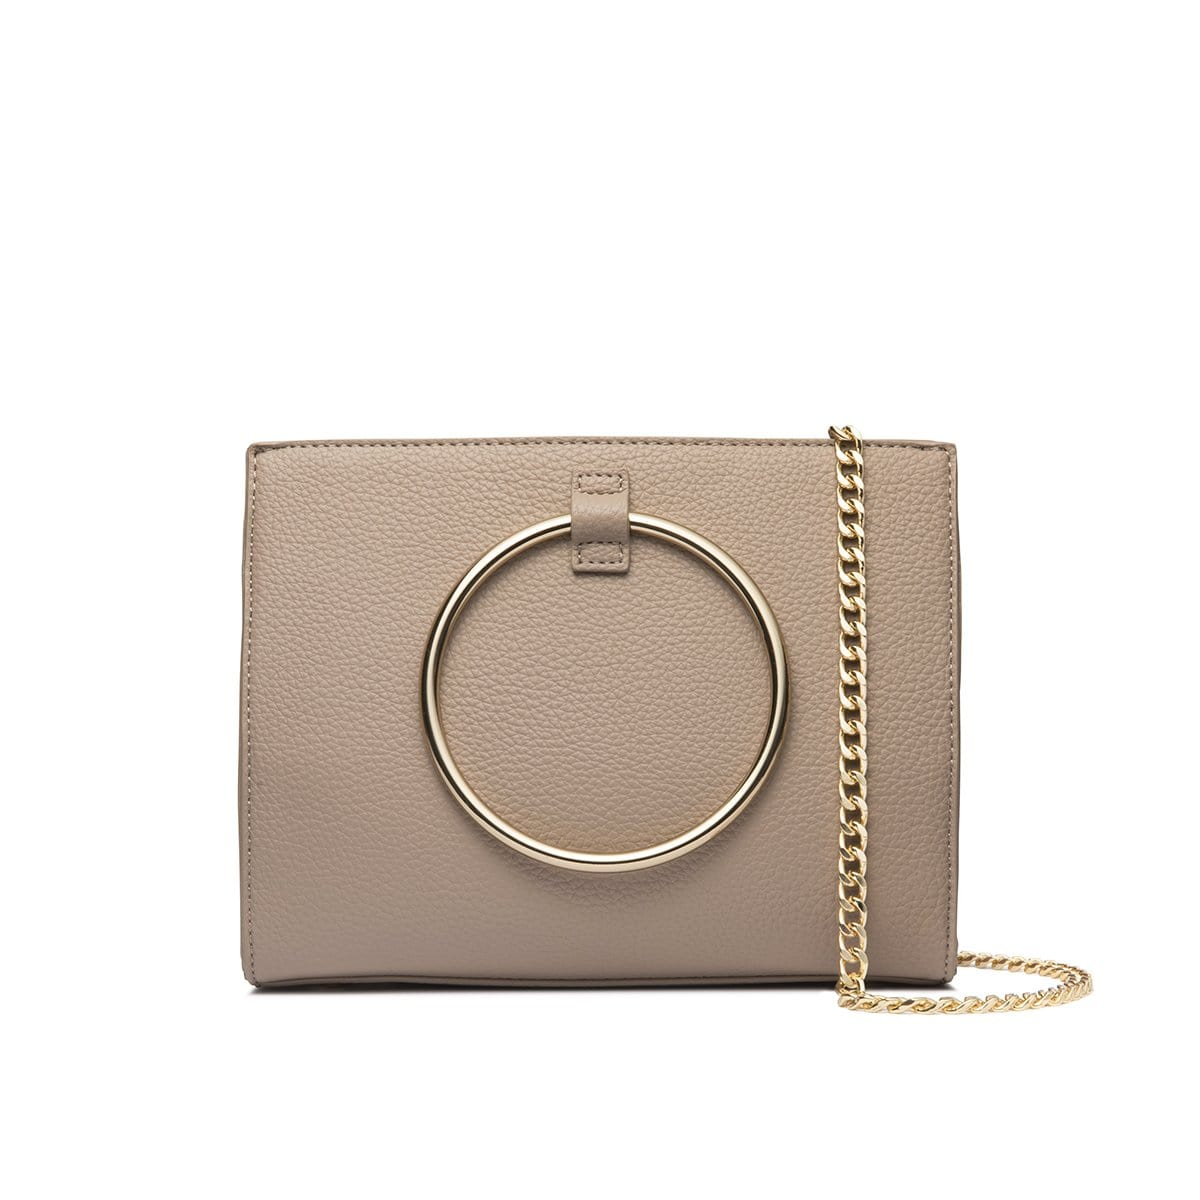 Moda Top Handle Bag (Warm Taupe/Yellow Gold)